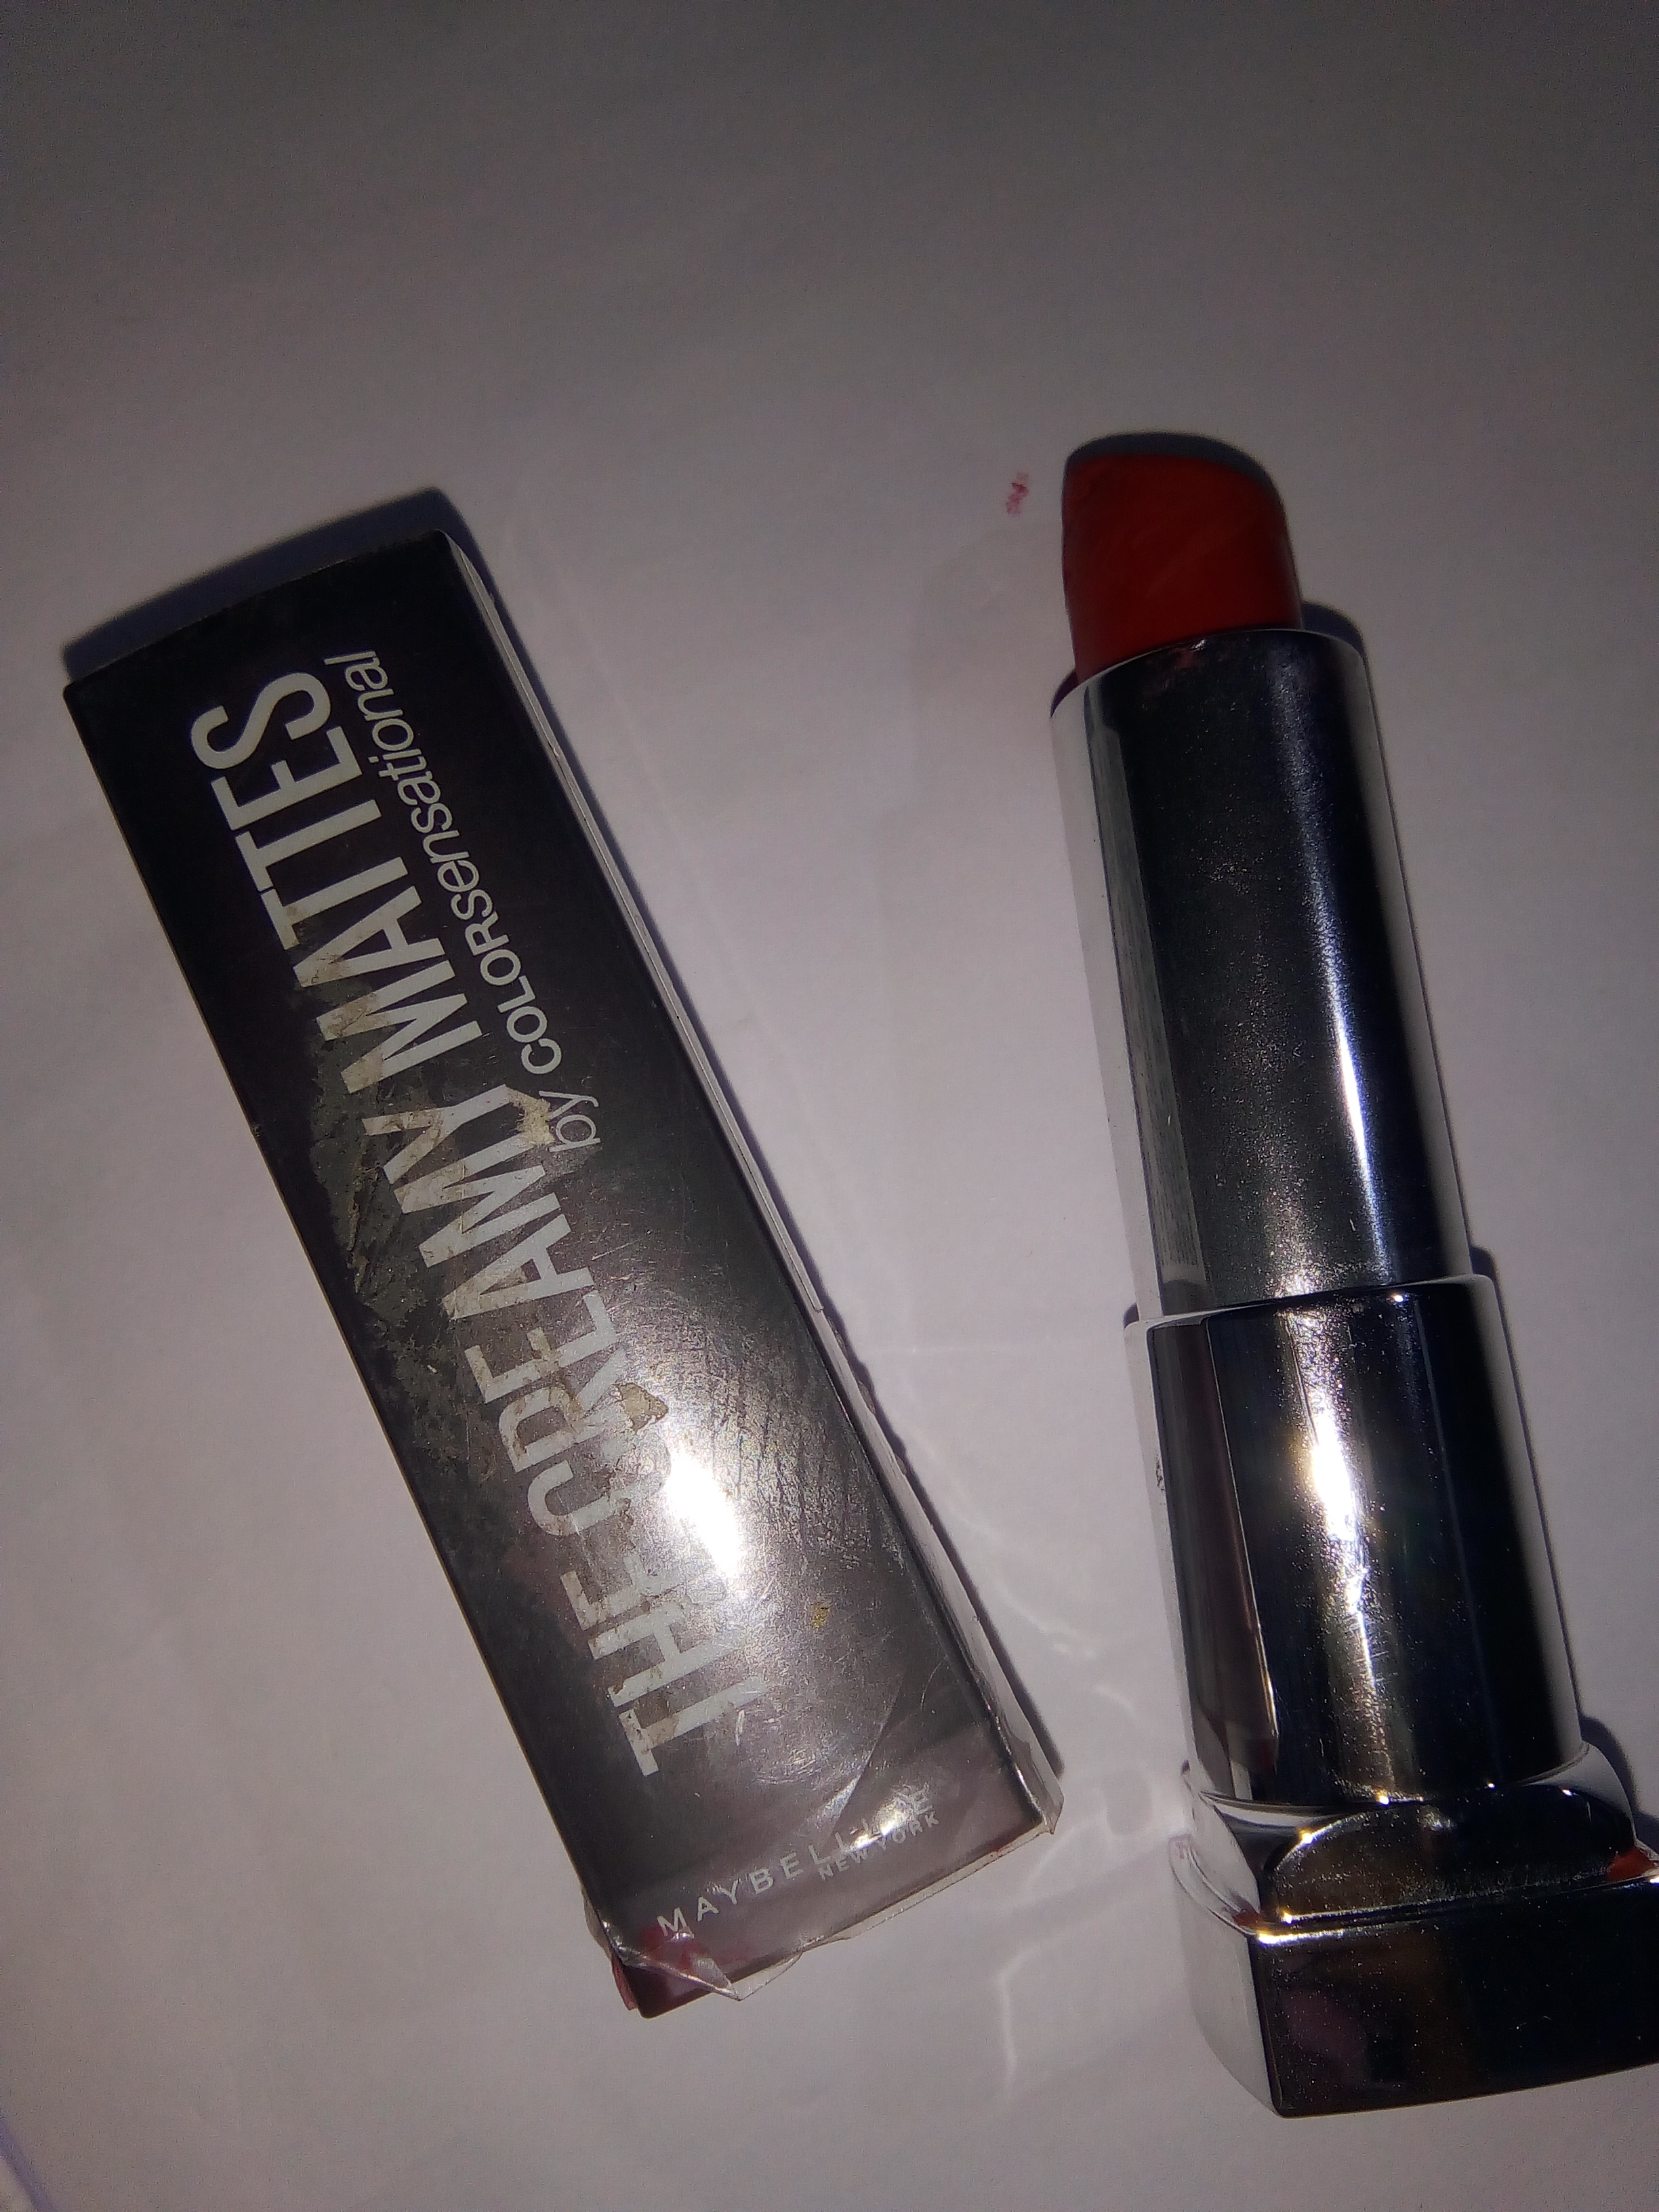 Maybelline New York Color Sensational Powder Matte Lipstick-Maybelline New York Color Sensational Powder Matte Lipstick-By aneesha